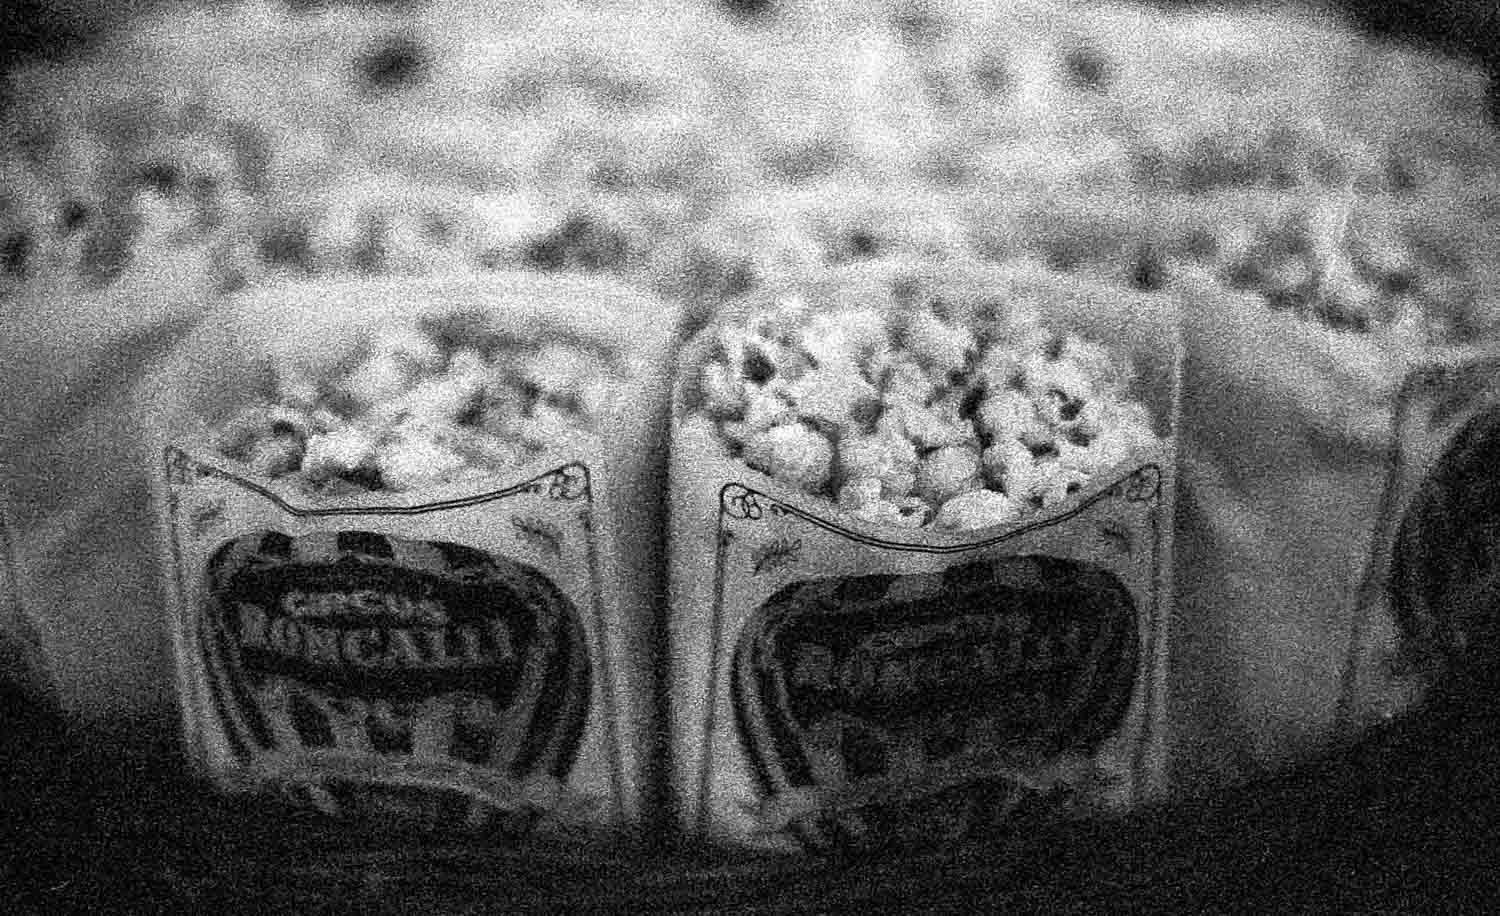 5 Frames... Pushing Ilford Delta 3200 Professional to EI 25000 (35mm : EI 2500 : Canon EOS-3) - by Lee Irvine